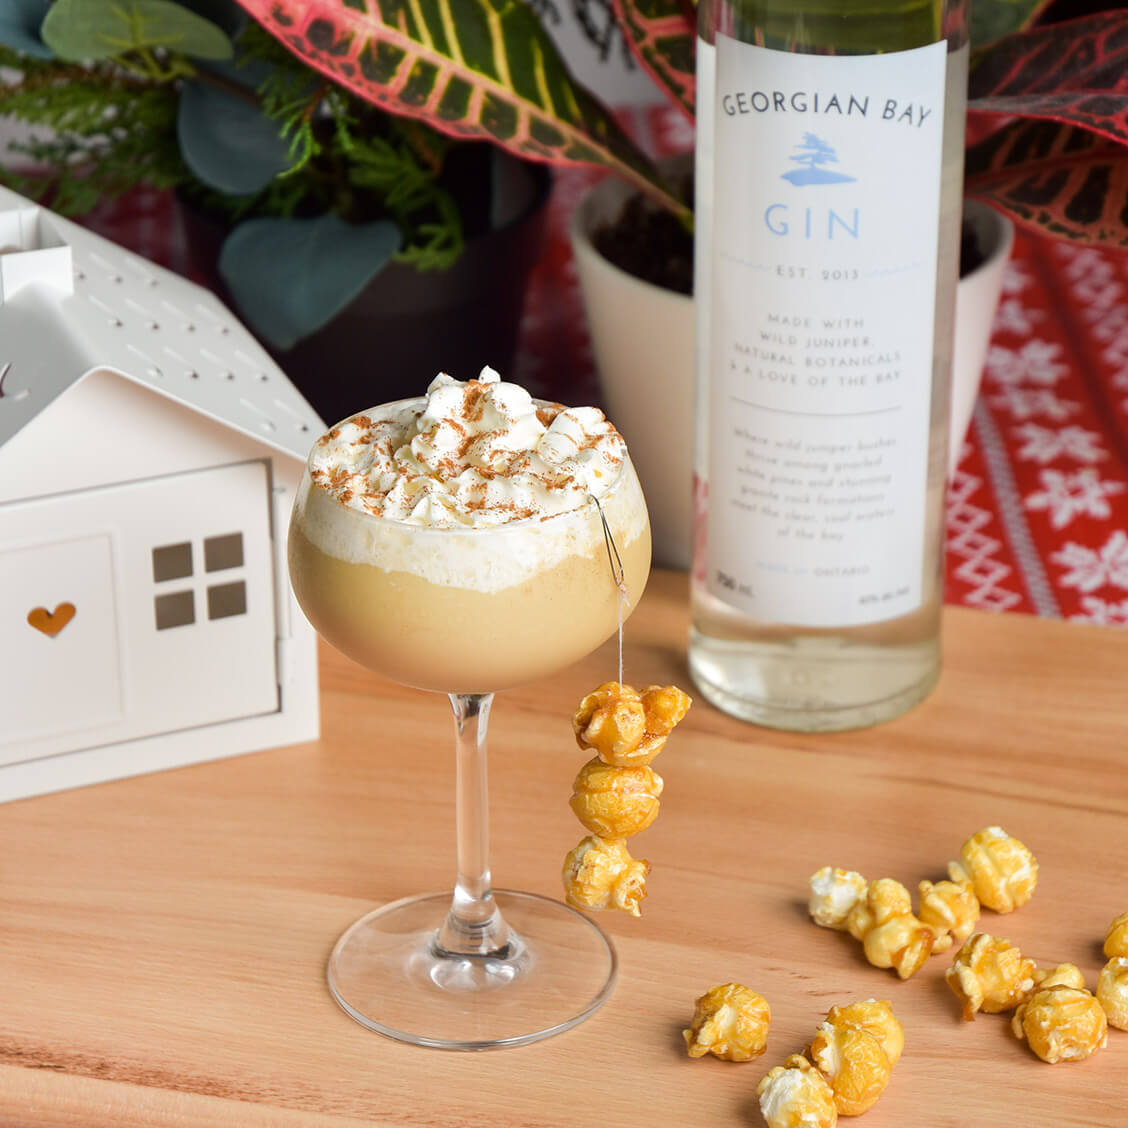 Georgian Bay Gin cocktail - Gingerbread Martini